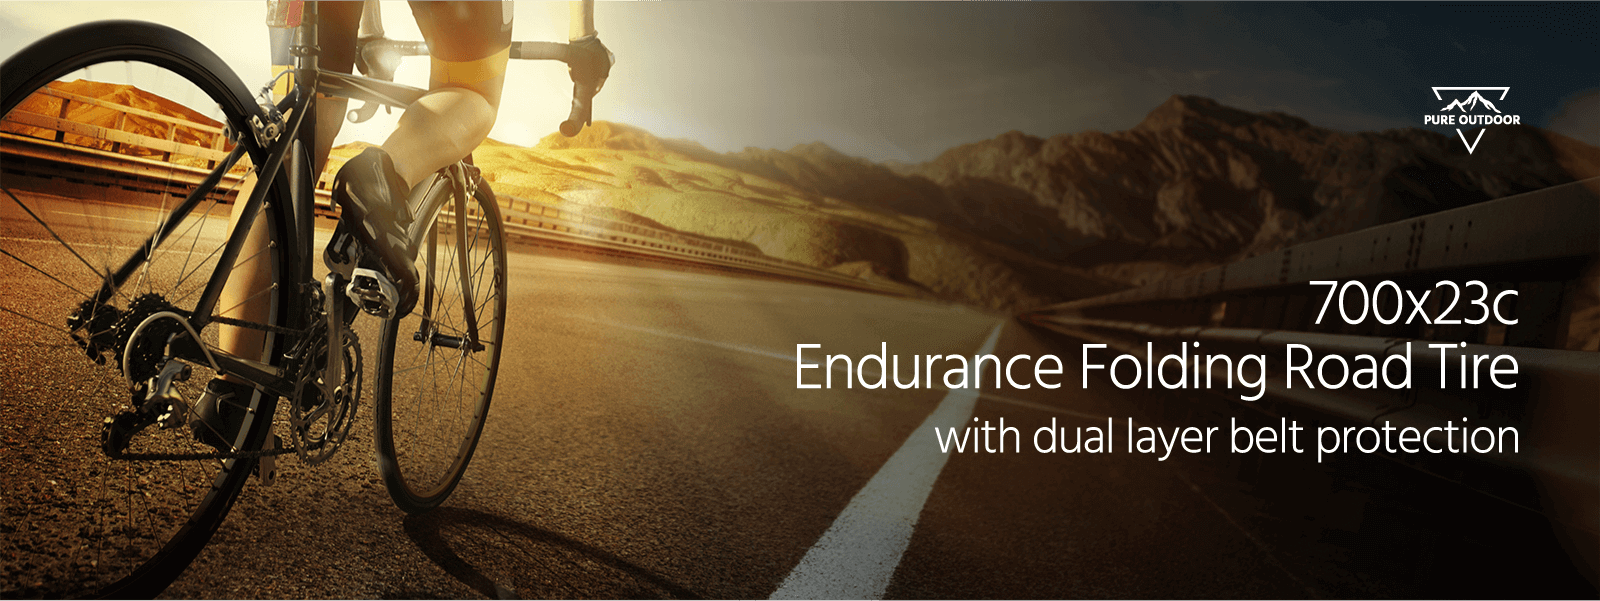 Endurance Folding Road Tire